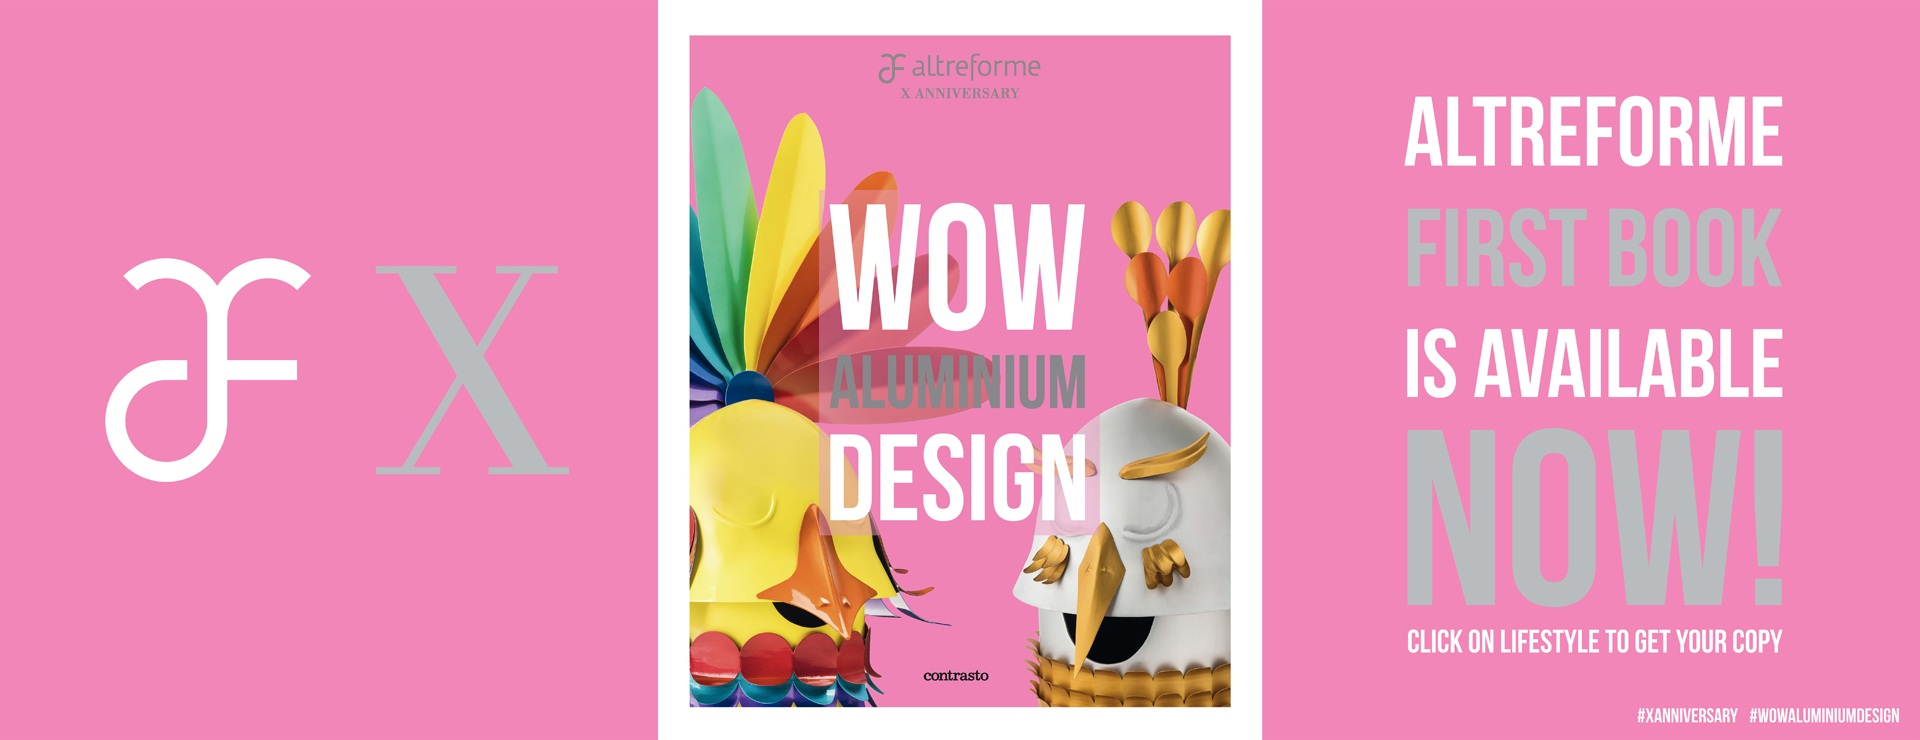 WOW ALUMINIUM DESIGN